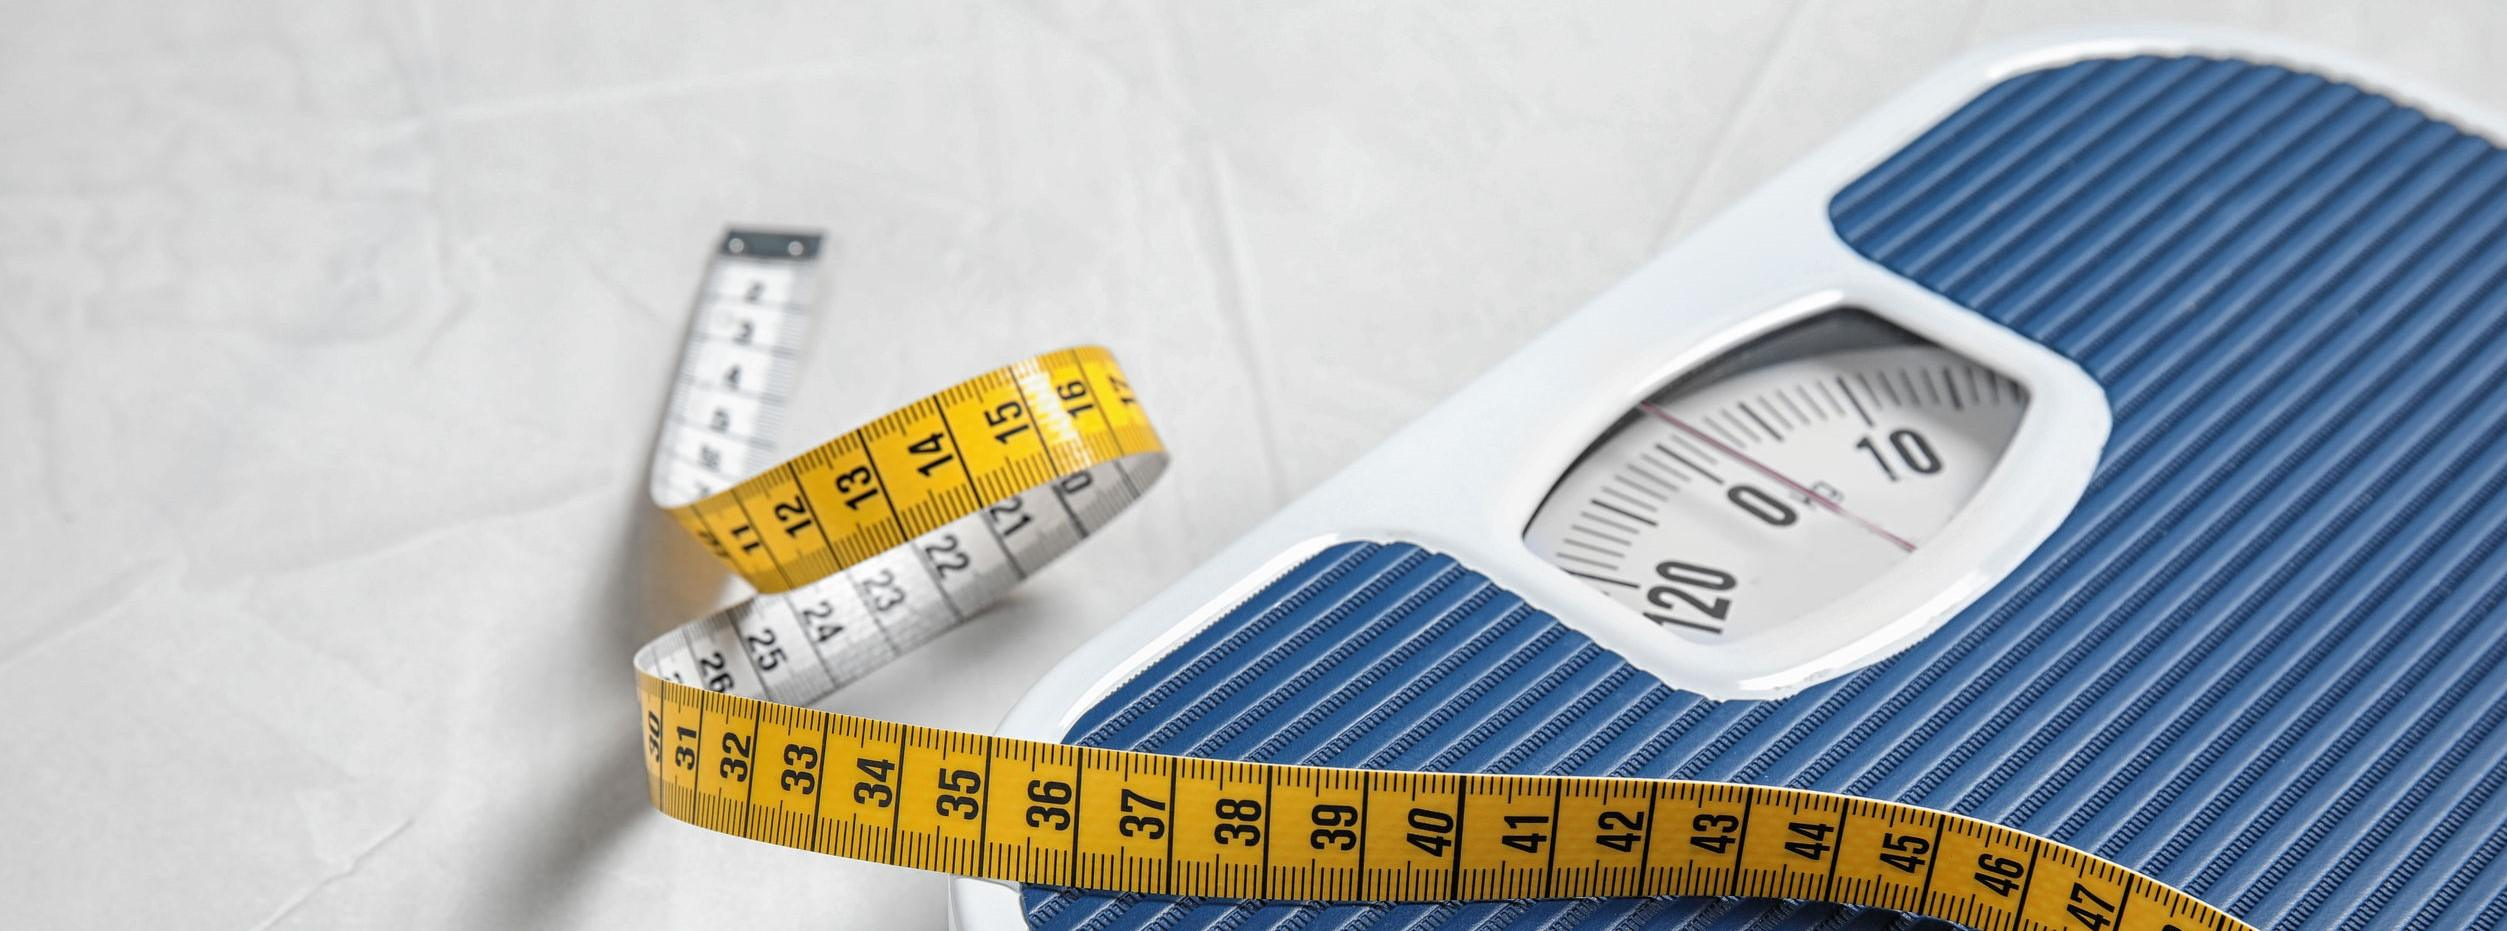 How to Lose Weight Fast: 9 Strategies for Quick Weight Loss